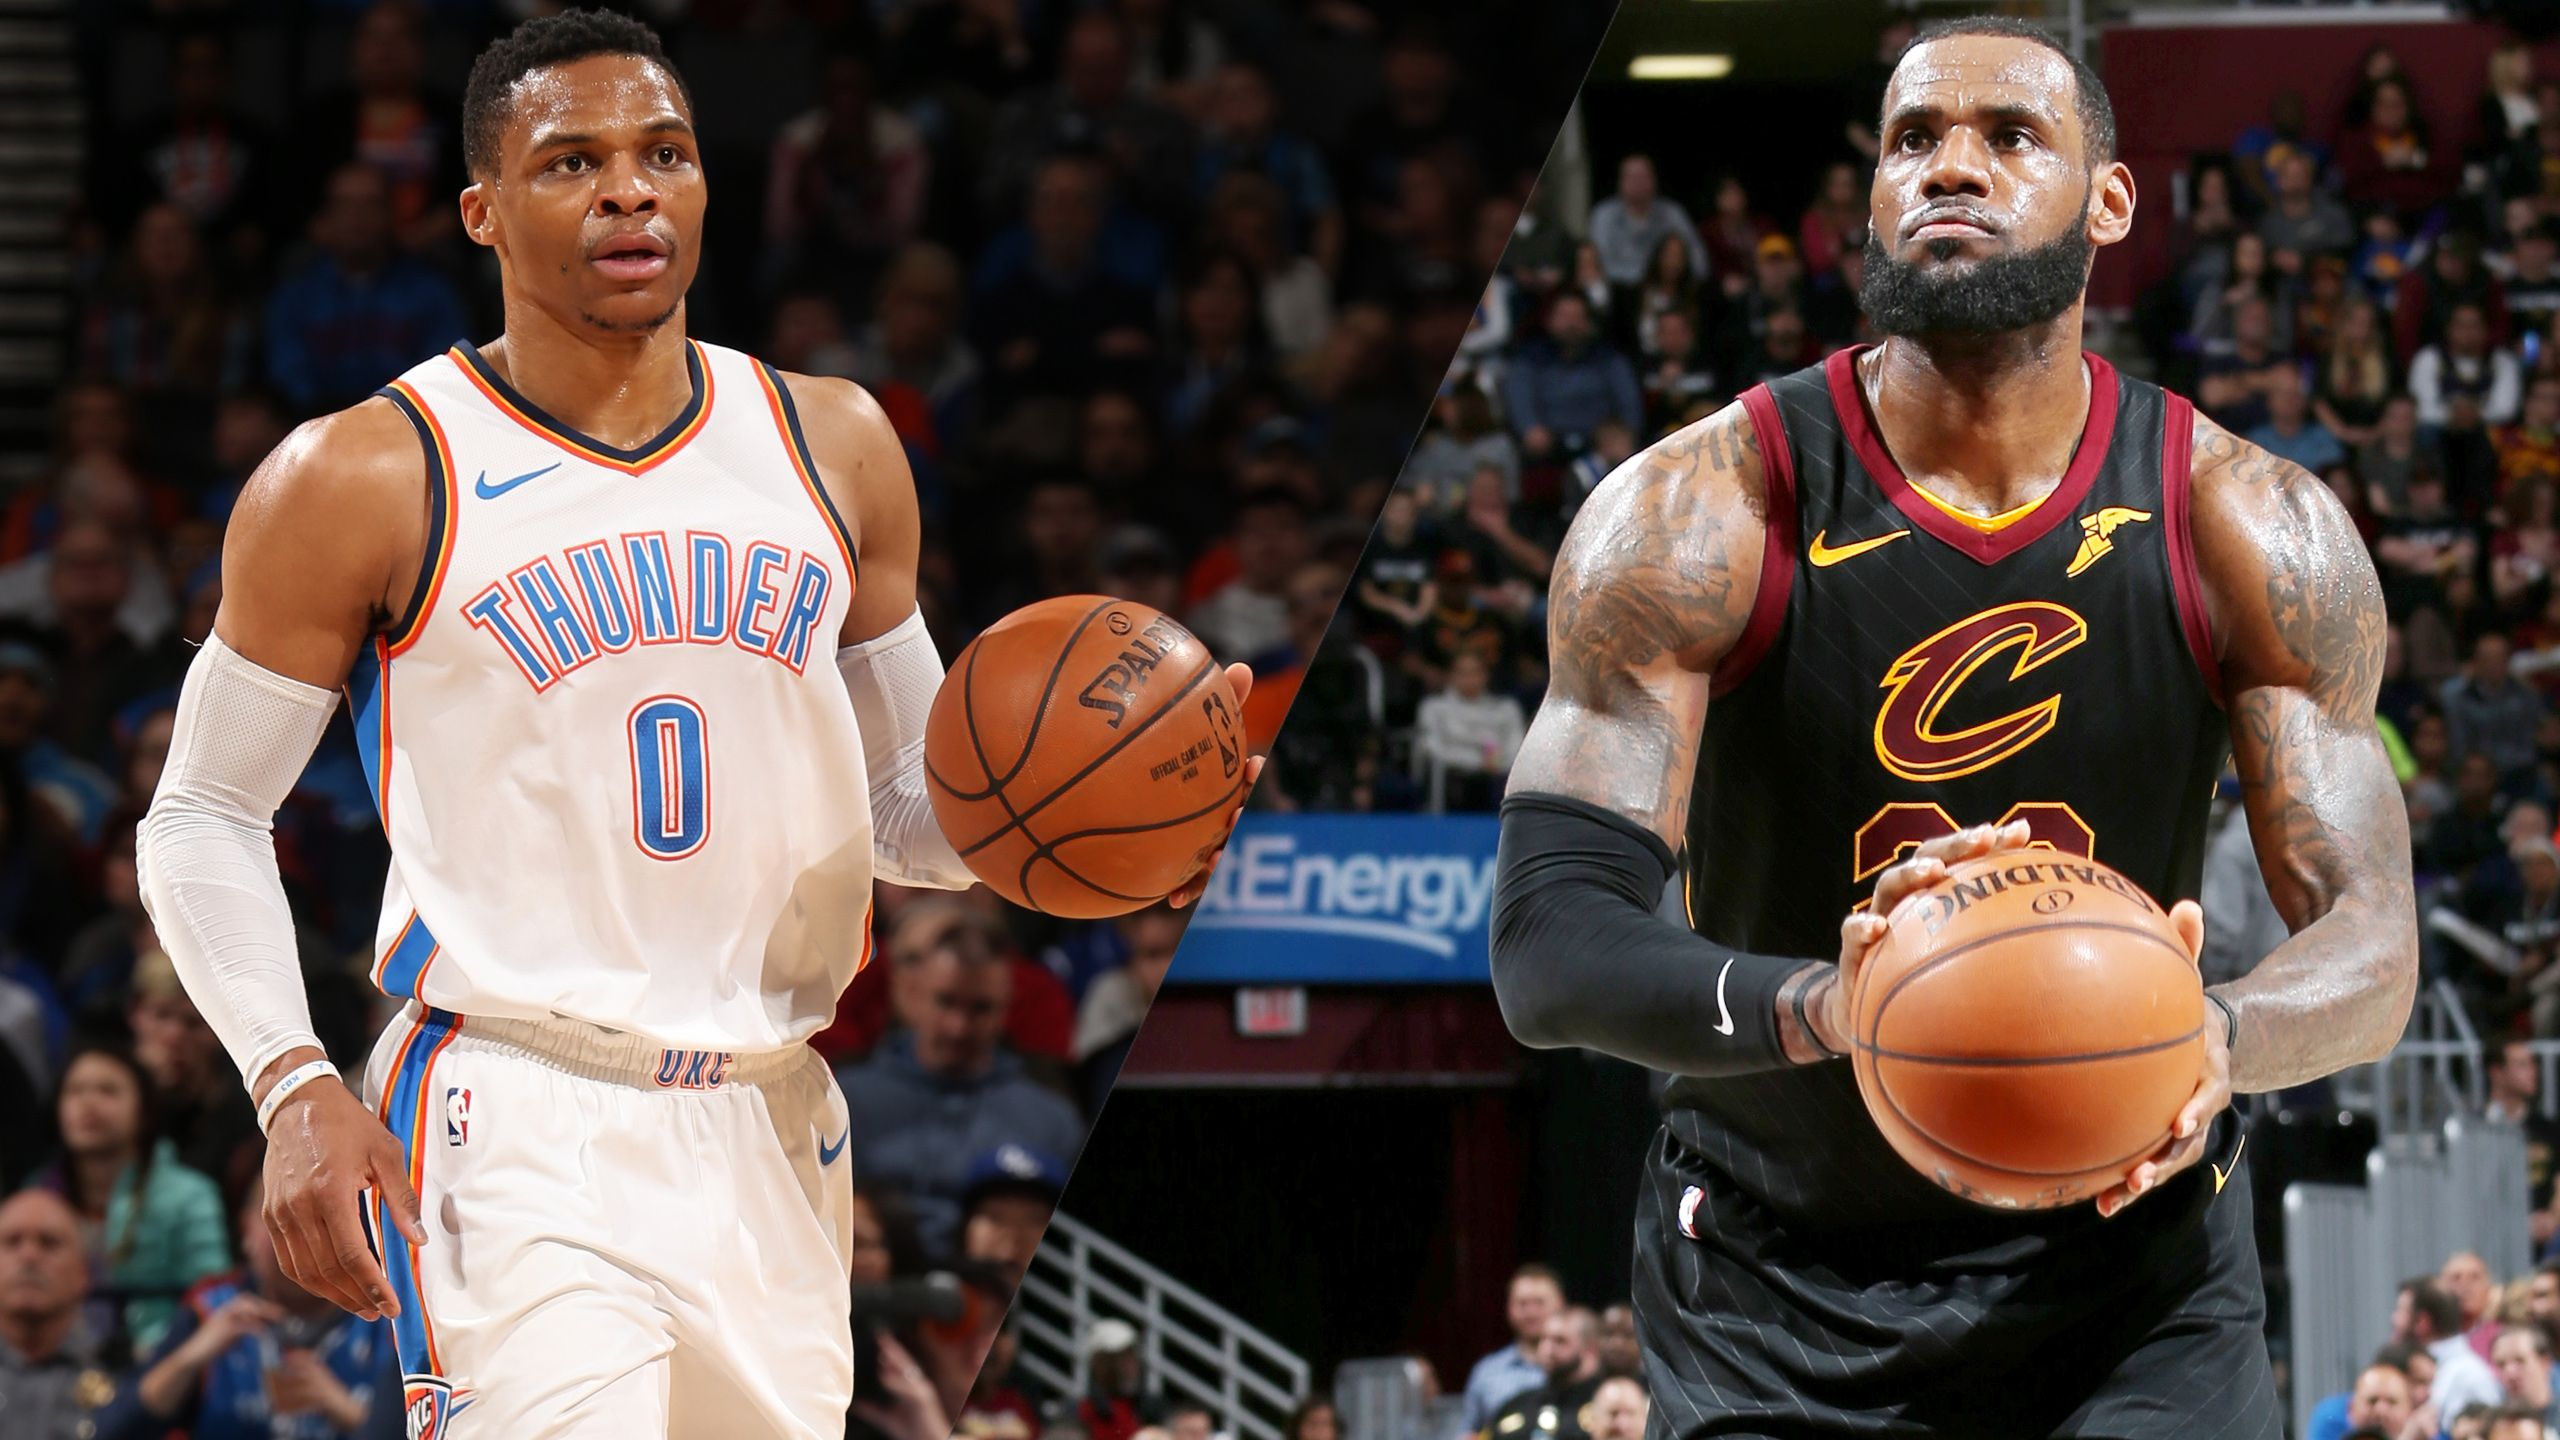 Oklahoma City Thunder vs. Cleveland Cavaliers (re-air)